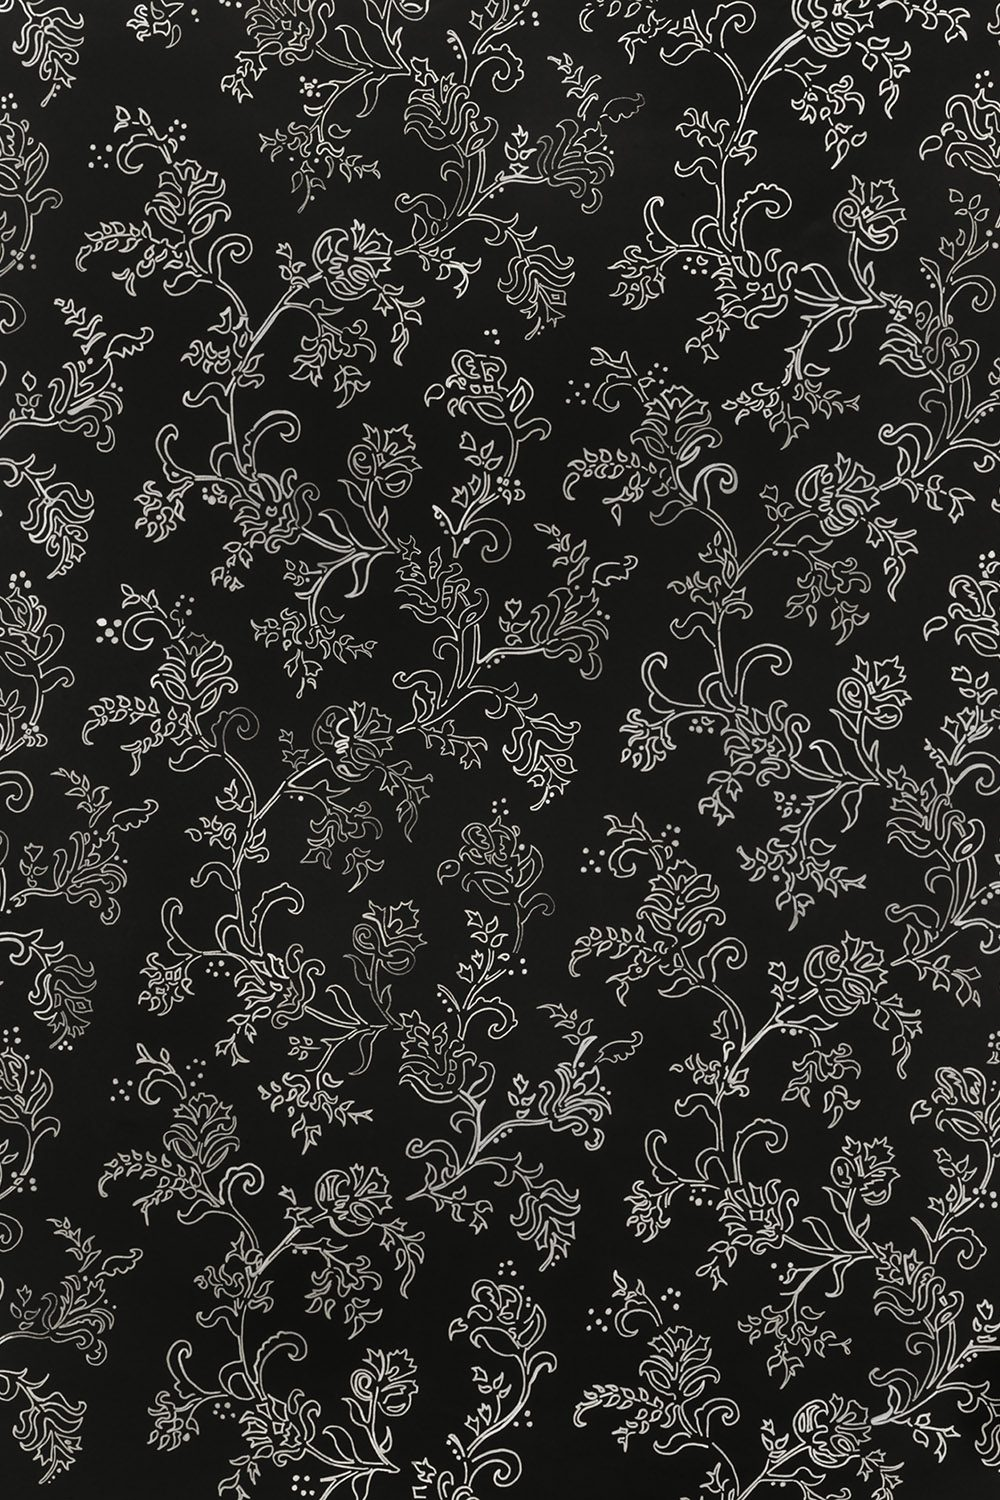 Black And White Floral Printed Vinyl Backdrop Savage Universal